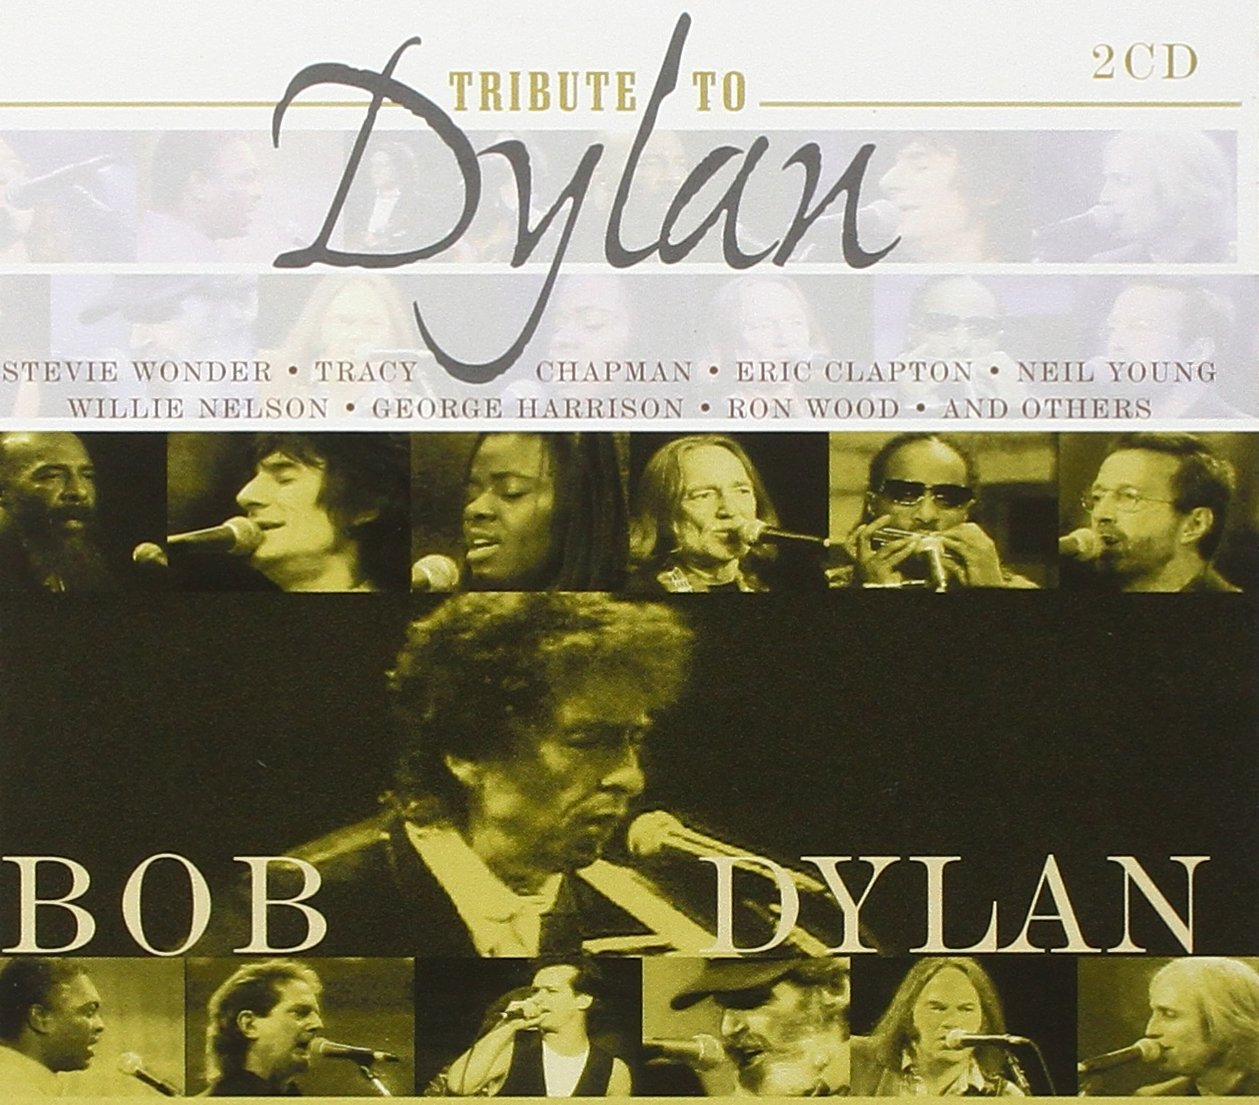 Tribute to Dylan